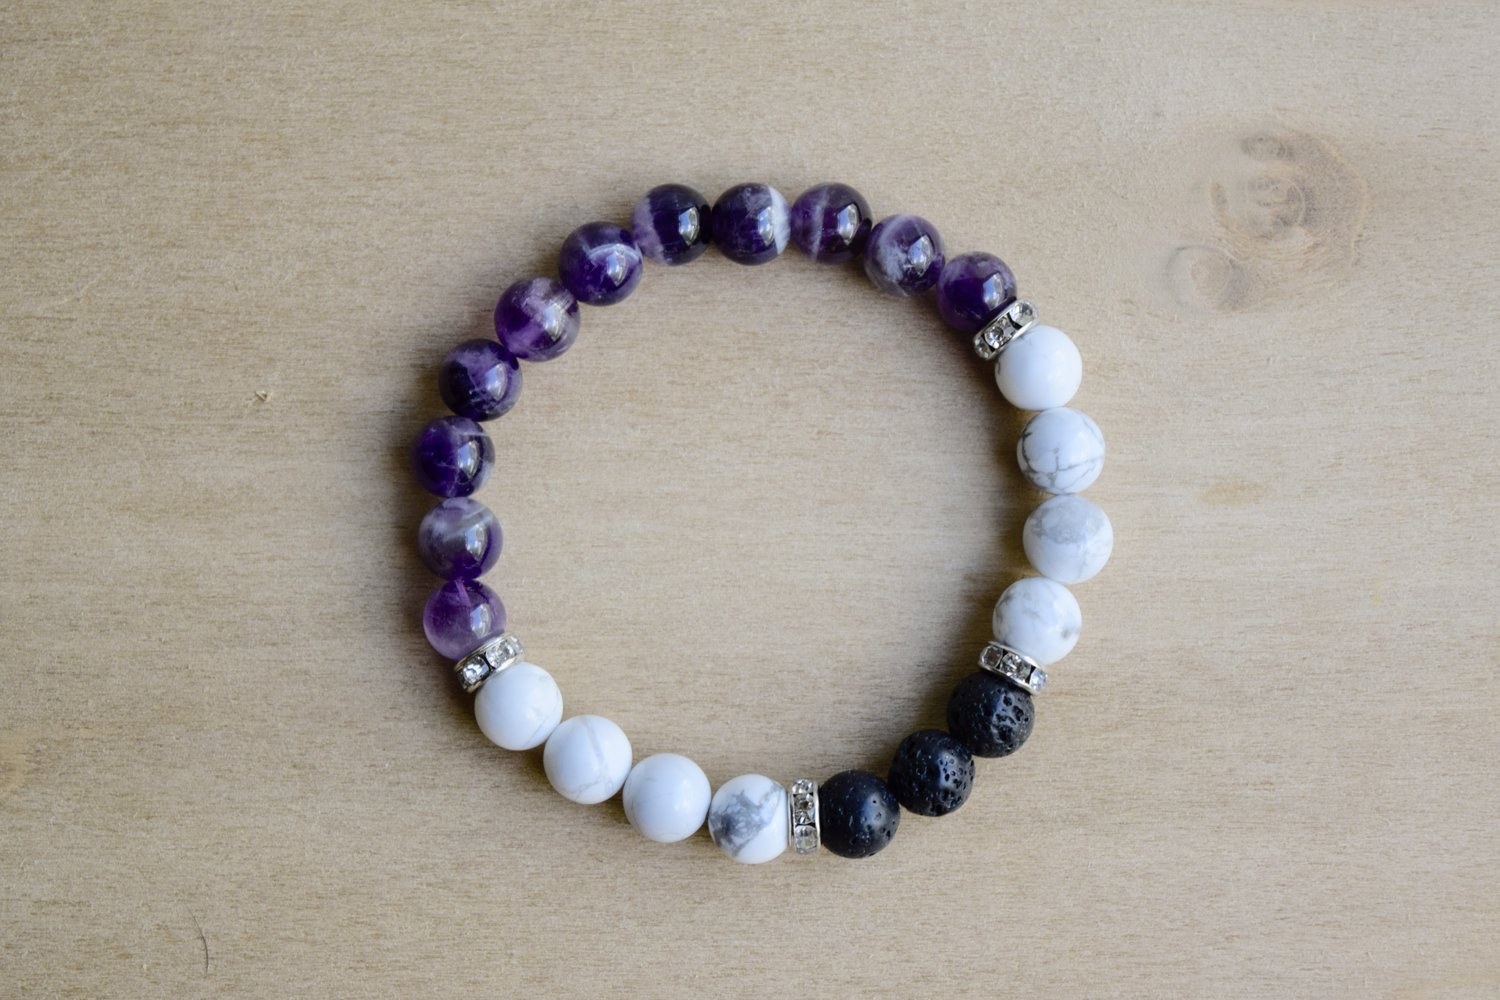 c97c85e0c84 SPIRITUAL PEACE // Howlite and Amethyst Meditation Bracelet with Essential  Oil Diffusing Lava Stone Beads